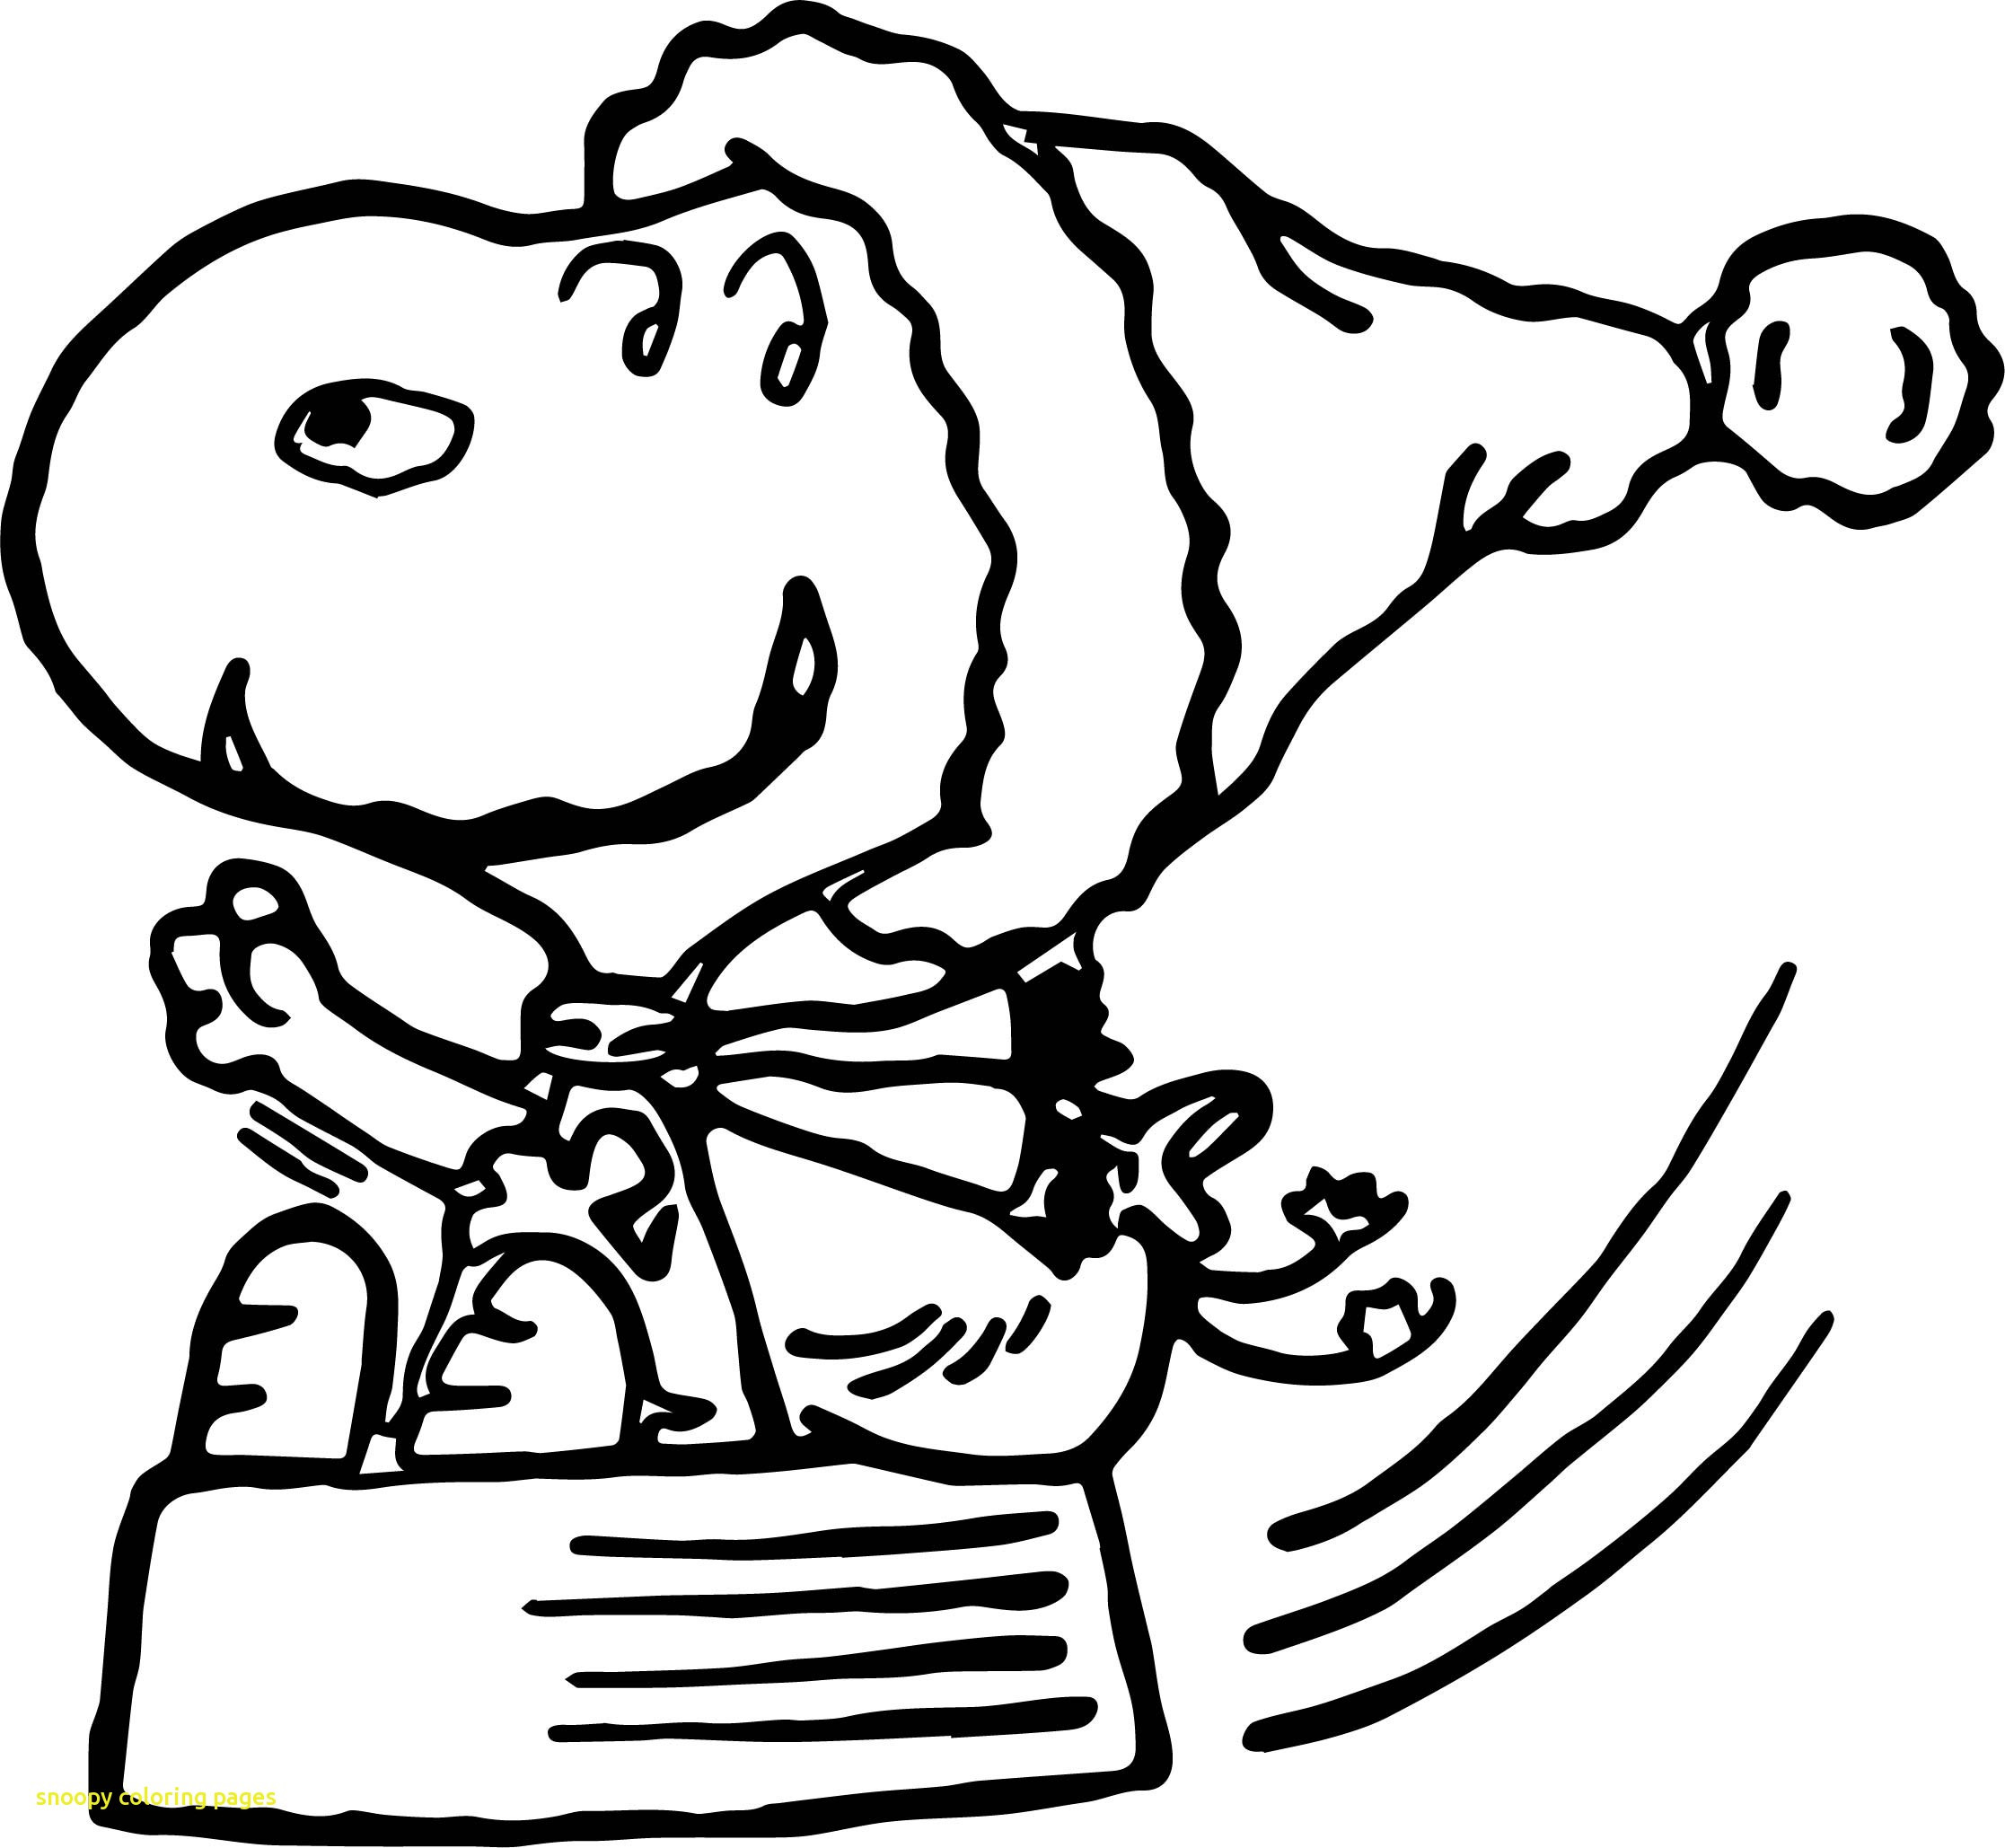 2233x2058 Snoopy Coloring Pages With Christmas Page Wkwedding Co Lovely